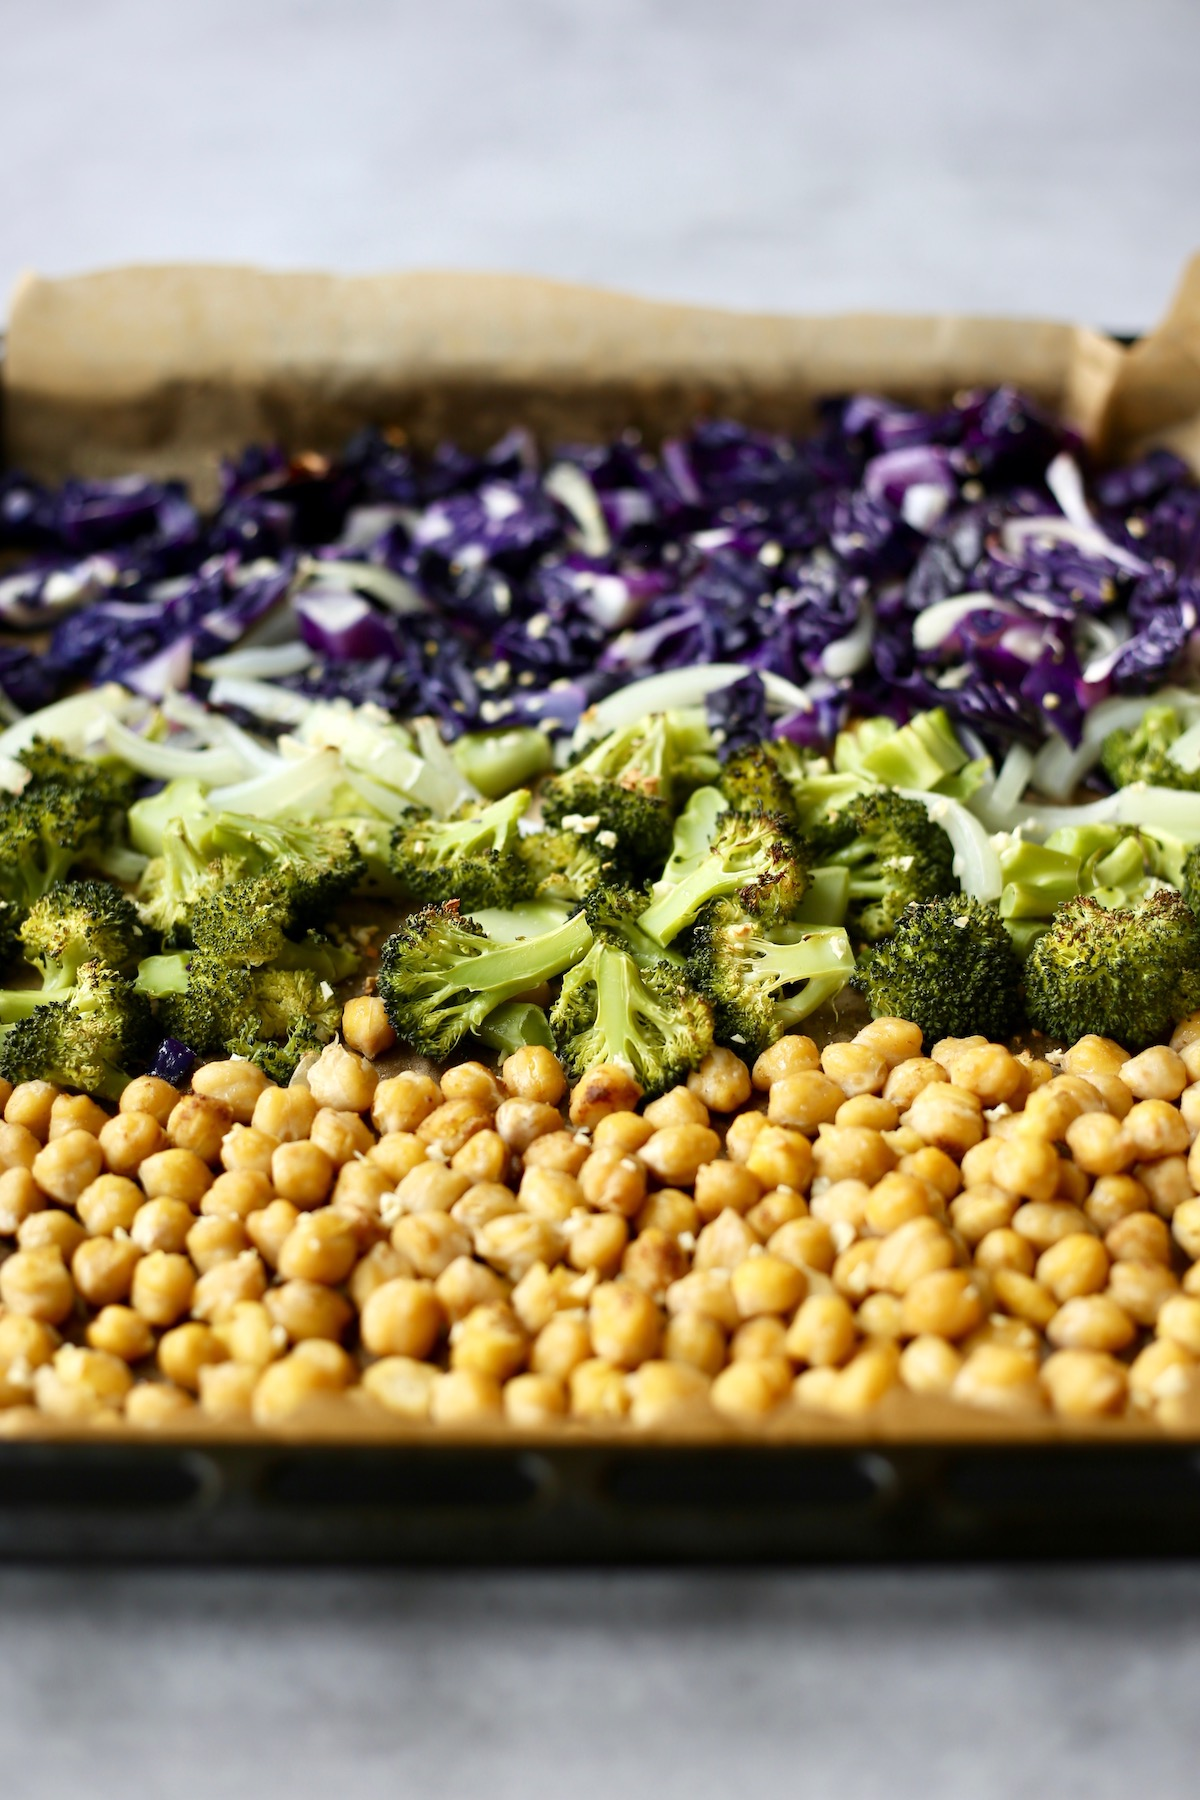 cabbage, broccoli and chickpeas after they've been roasted in the oven